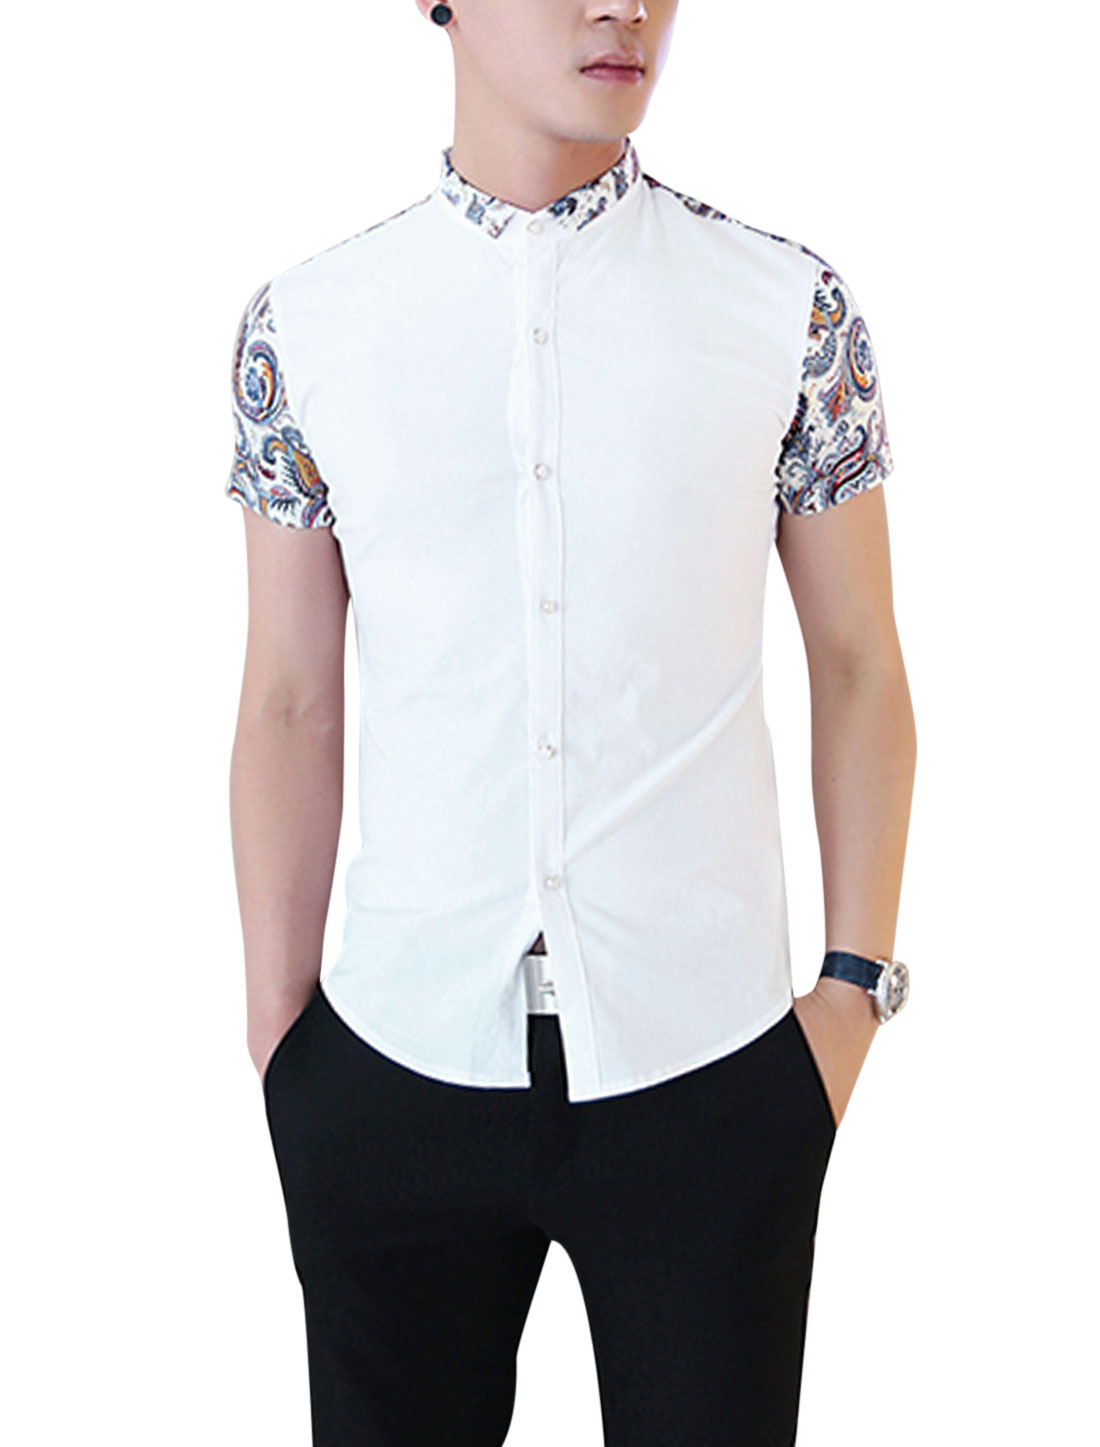 Men's Convertible Collar Button Down Short Sleeve Novelty Print Shirt White S